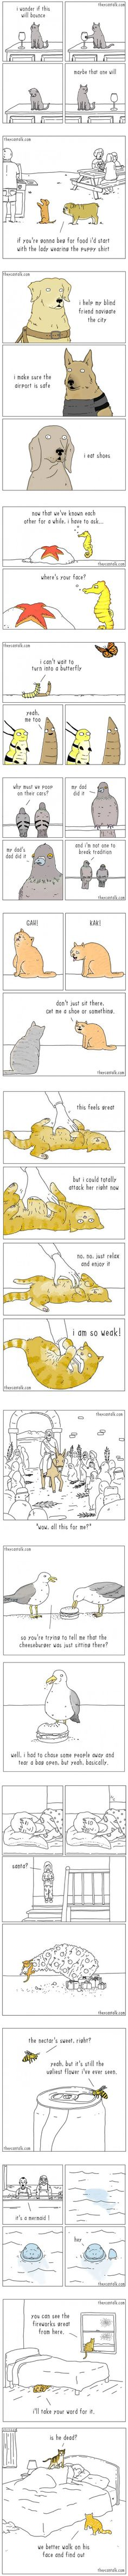 15 comics from an artist who understands animals perfectly (By Jimmy) - 9GAG